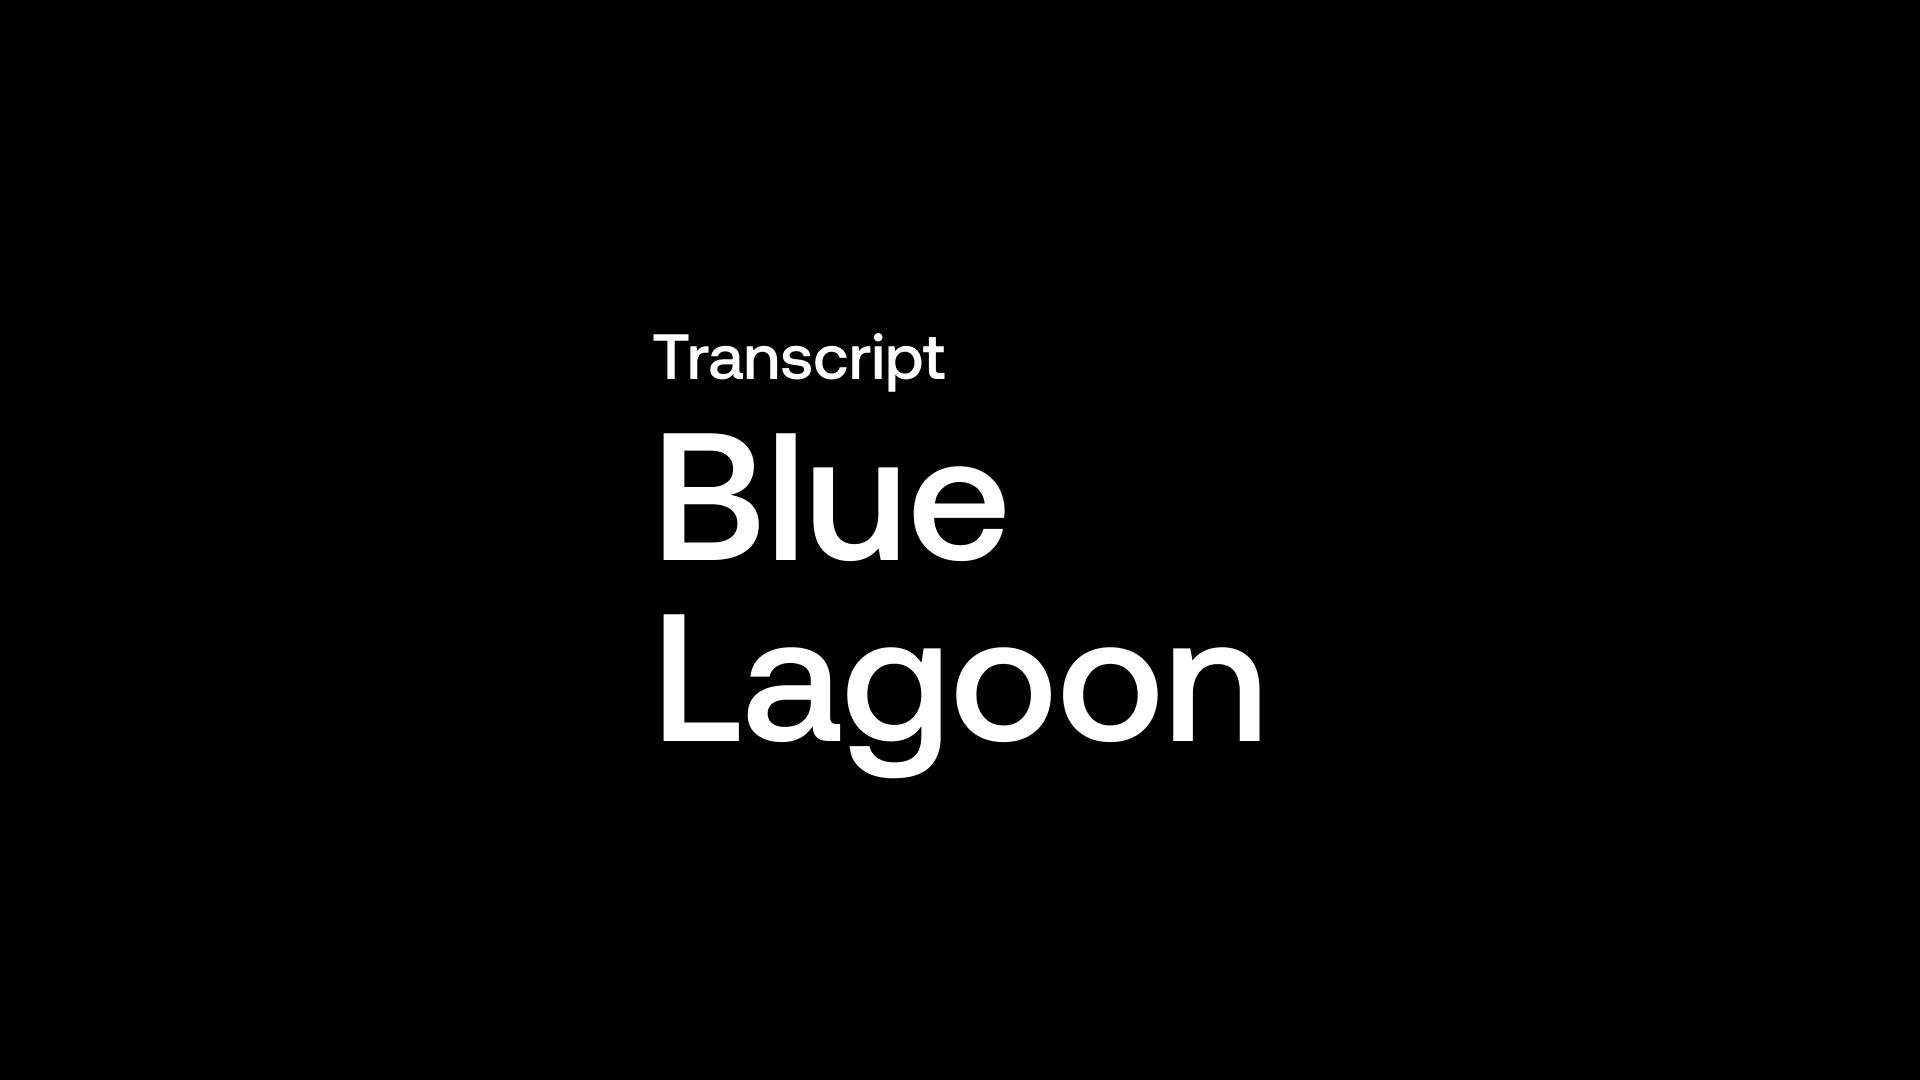 Transcript: Blue Lagoon Resources (BLLG) - Gold Producer Focused on Being Explorer